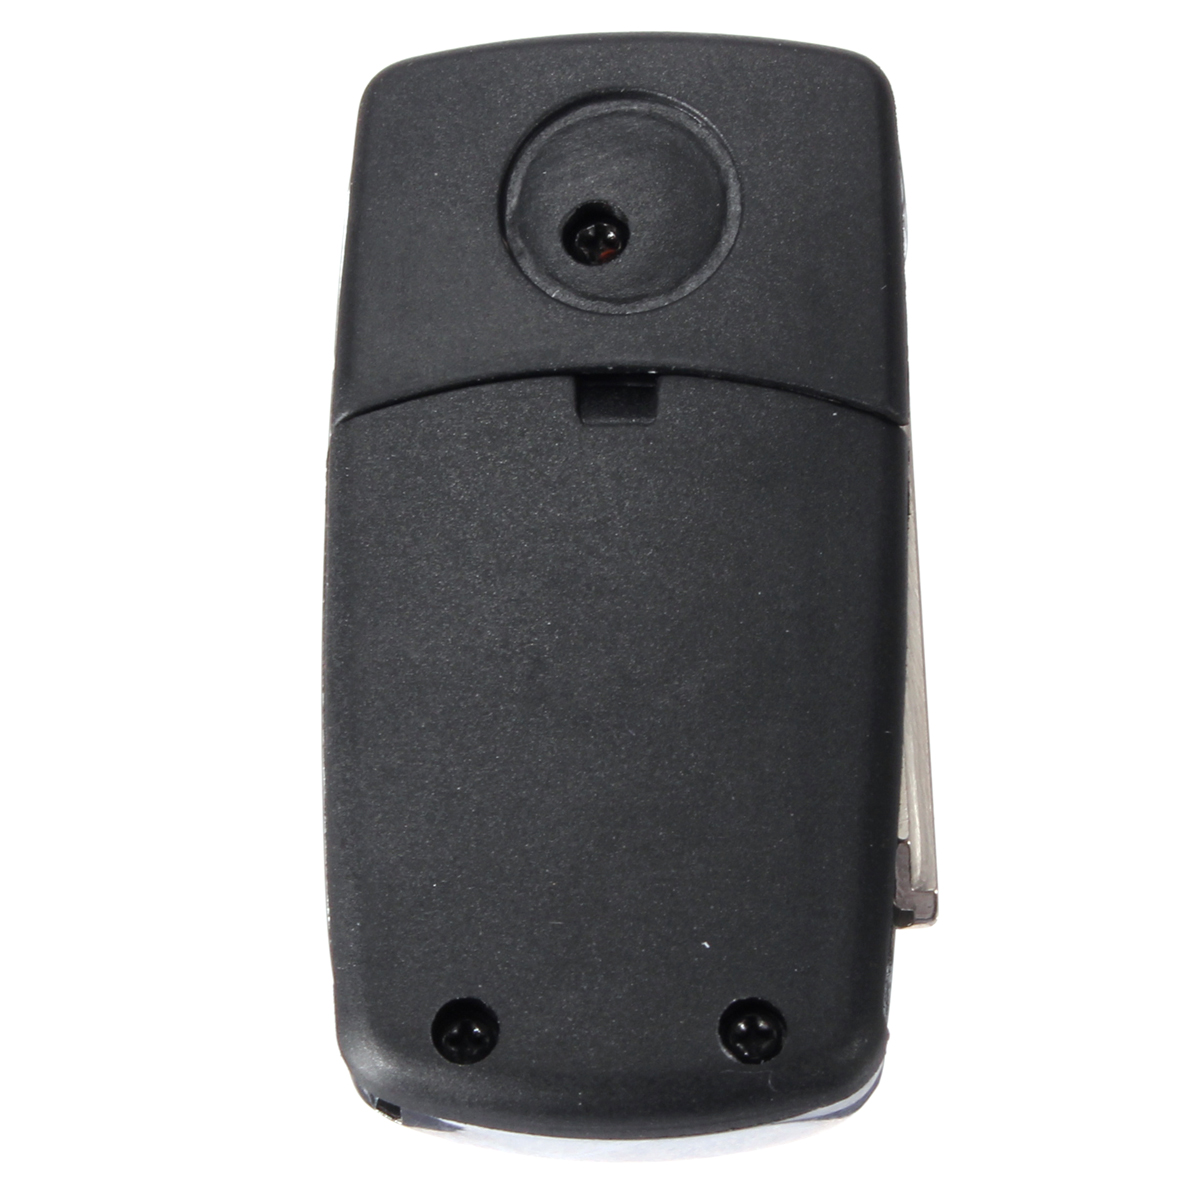 fiat stilo case 1 button replacement remote key fob shell case for fiat stilo punto seicento for - compare prices of 100939 products in car accessories from 308 online stores in.